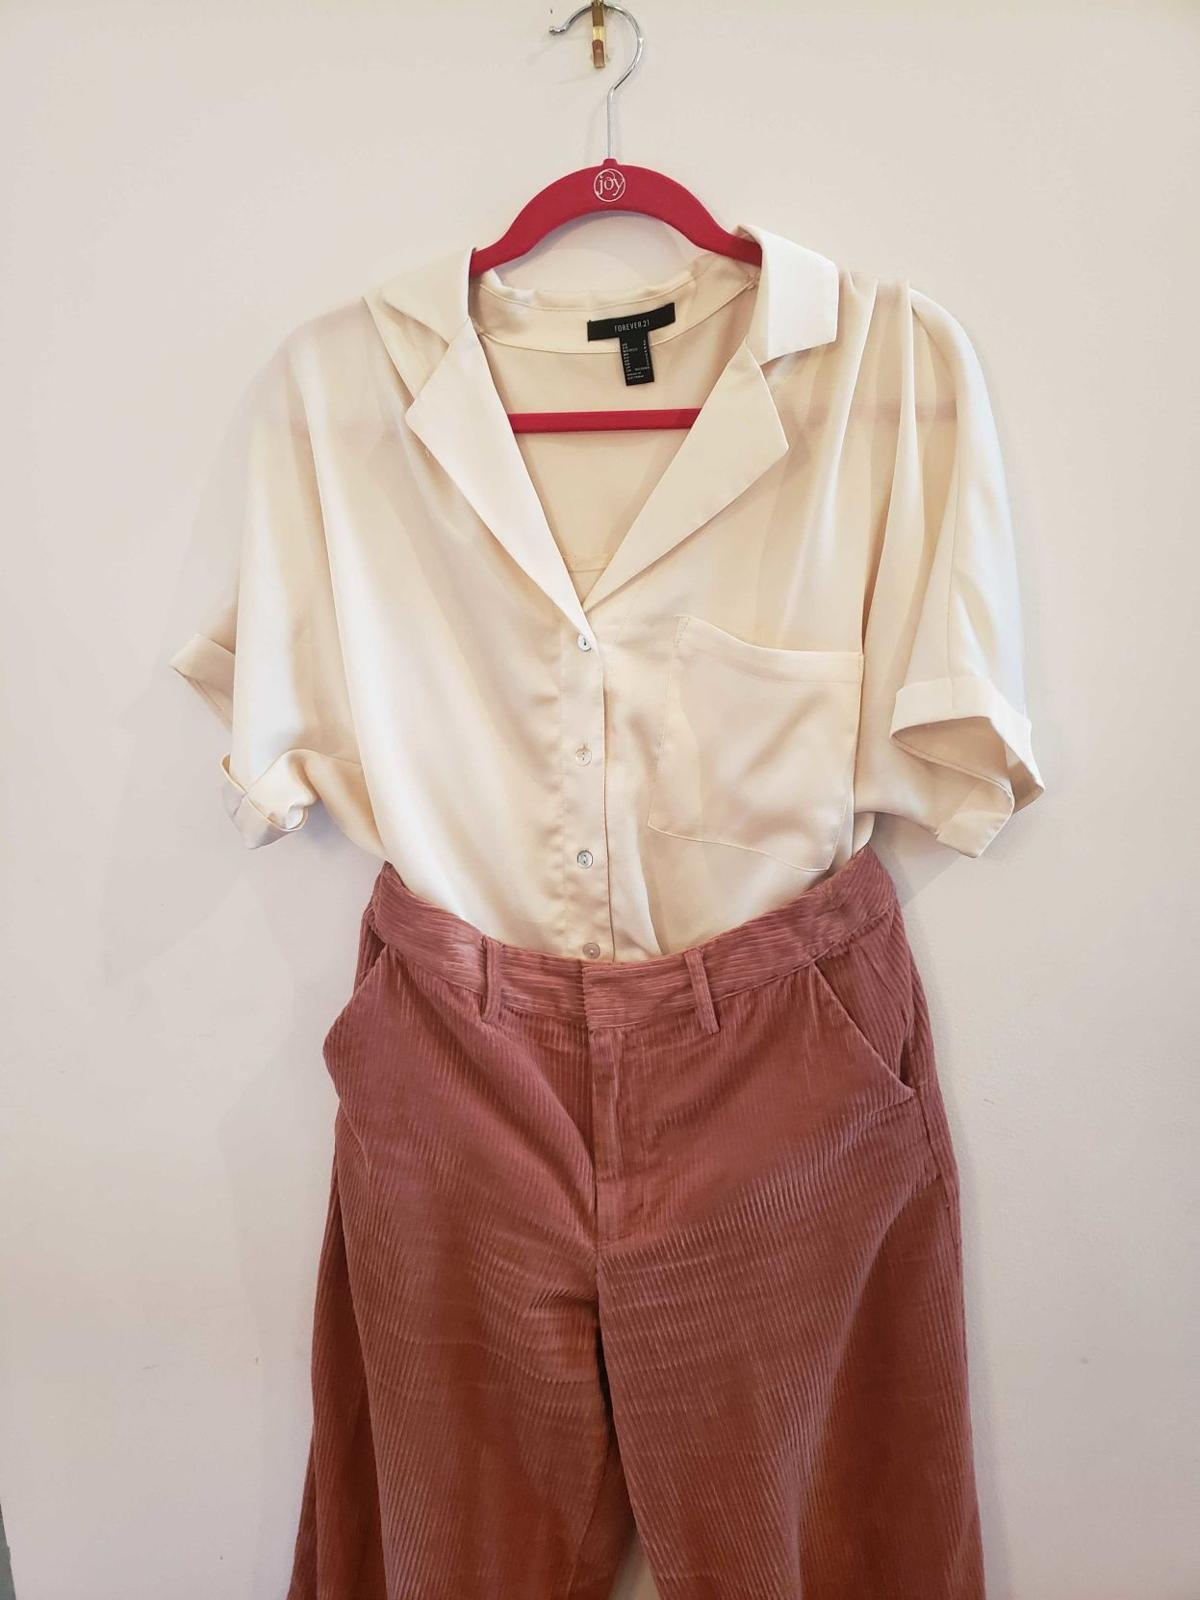 A short-sleeved blouse and corduroy pants hang on a hanger